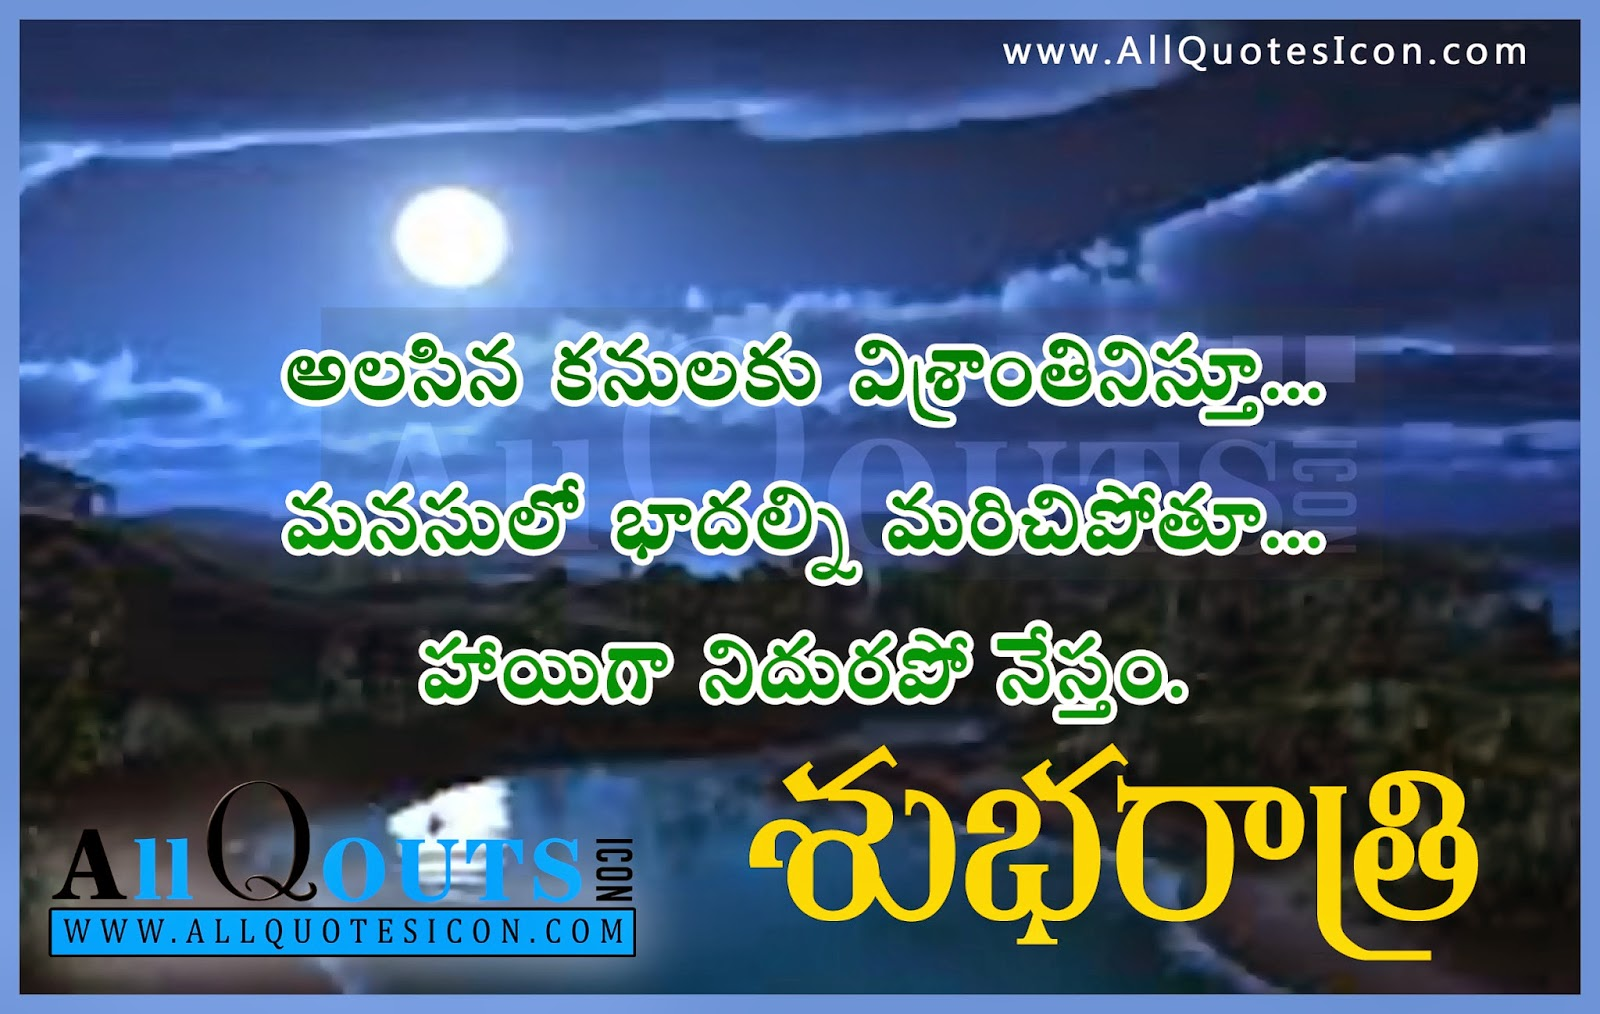 Elegant Good Night Quotes Telugu Hd Images Hd Greetings Images